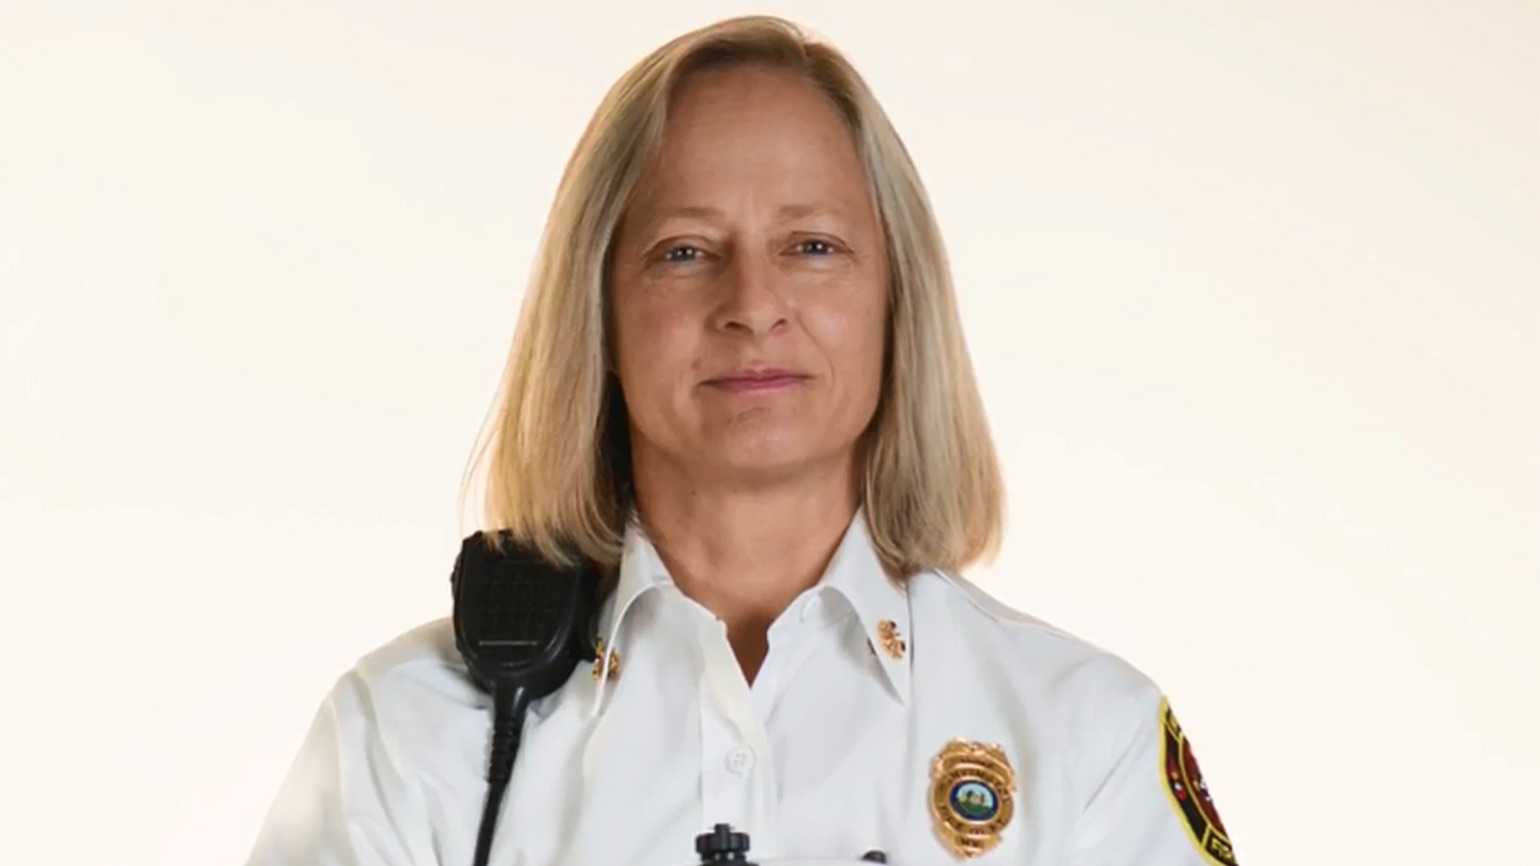 Jan Rader, fire chief in Huntington, West Virginia